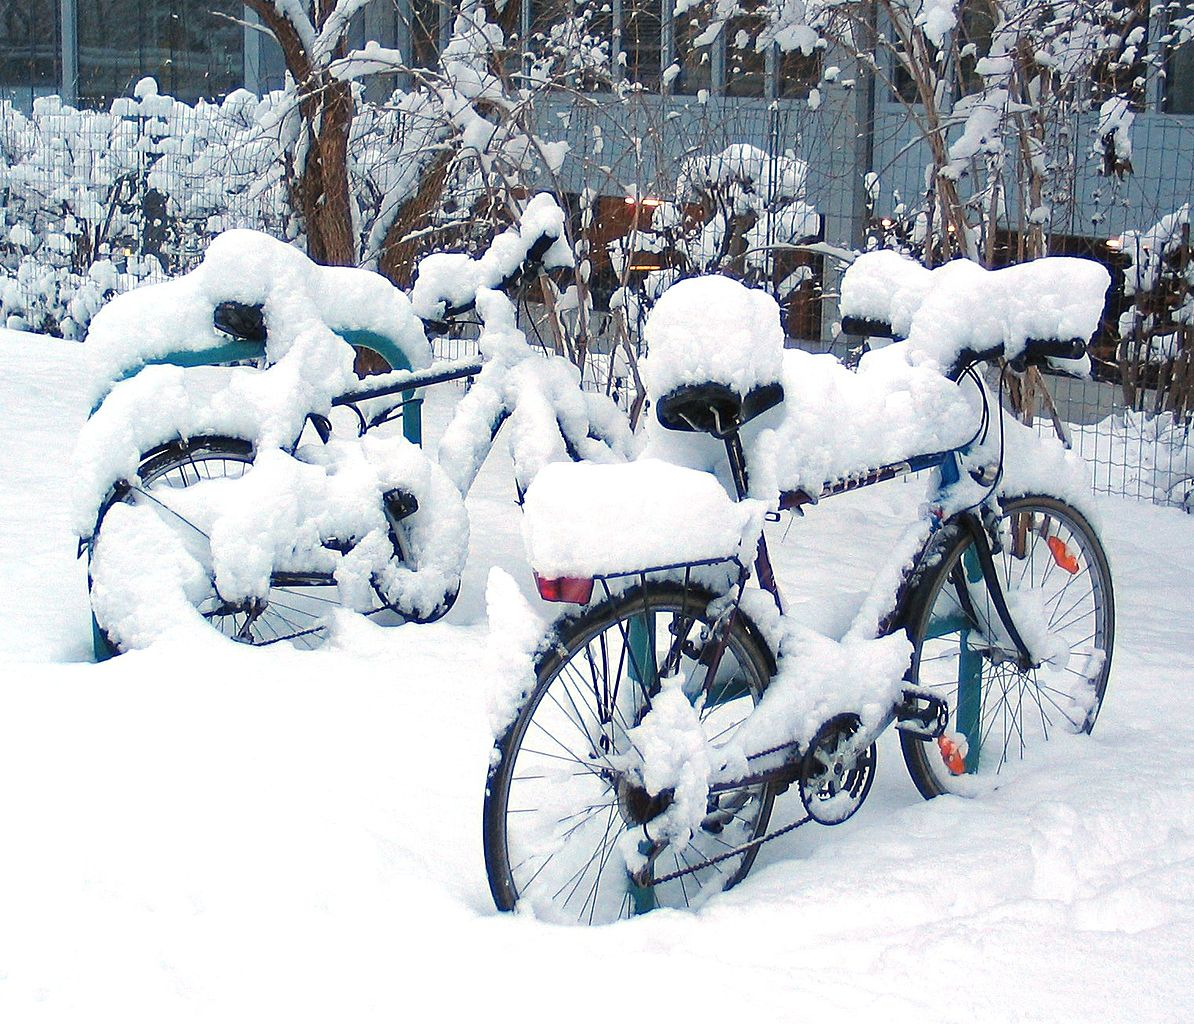 Bicycles covered in snow